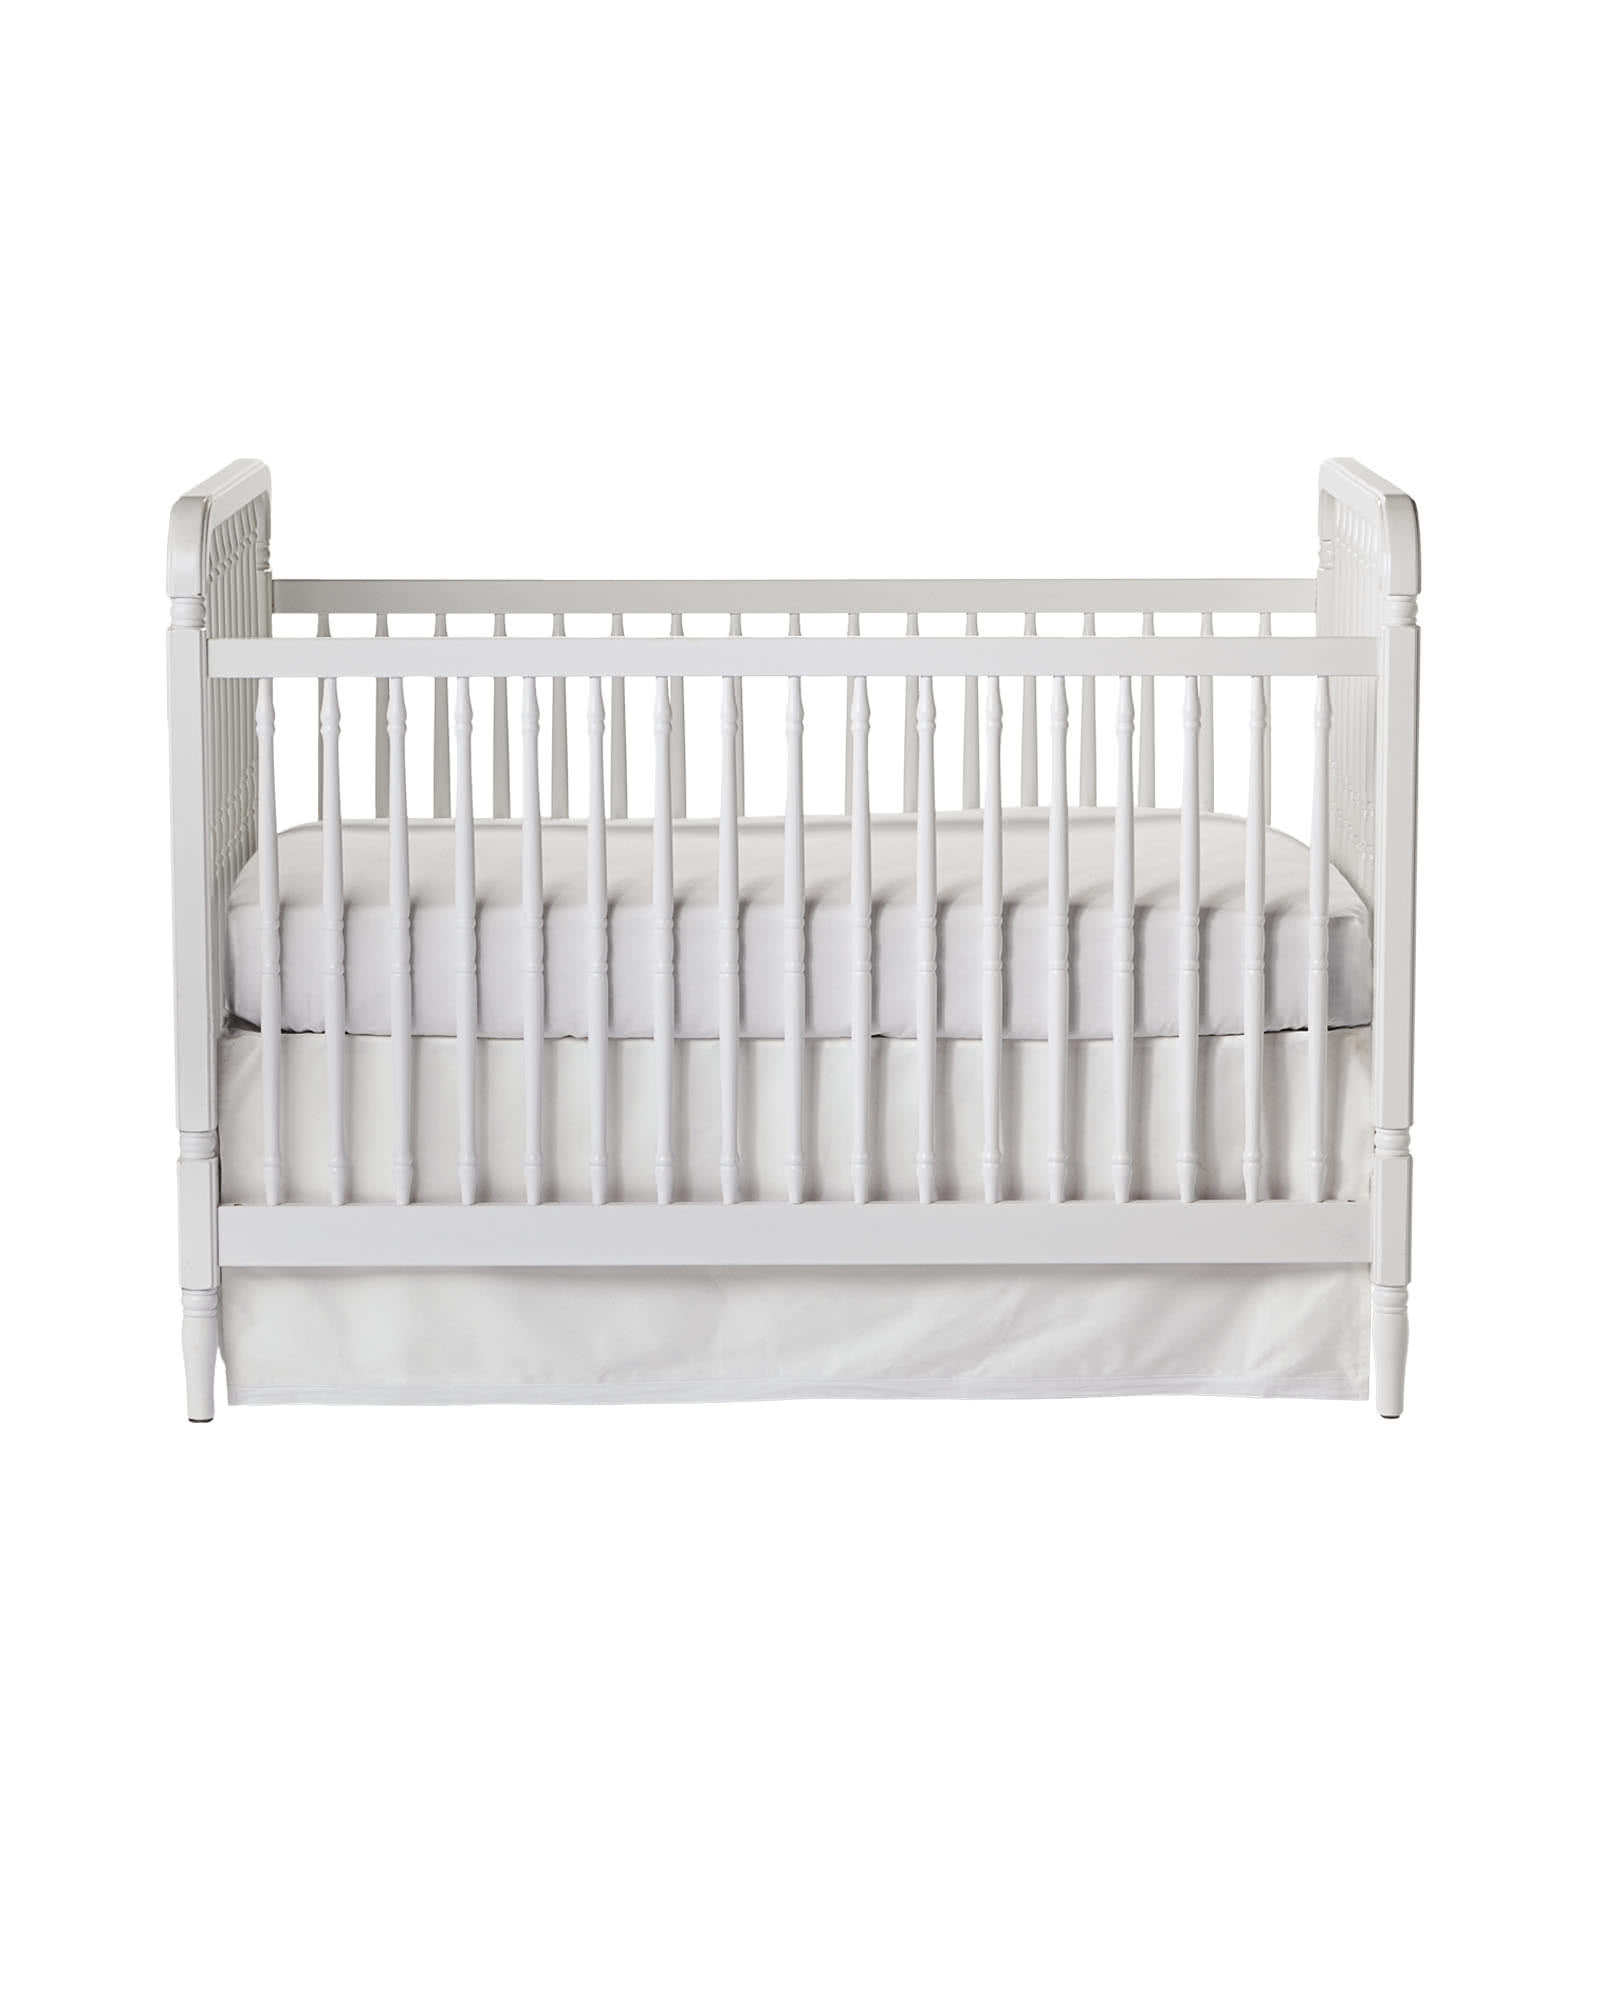 spindle crib white and gray boy nursery with blue accents